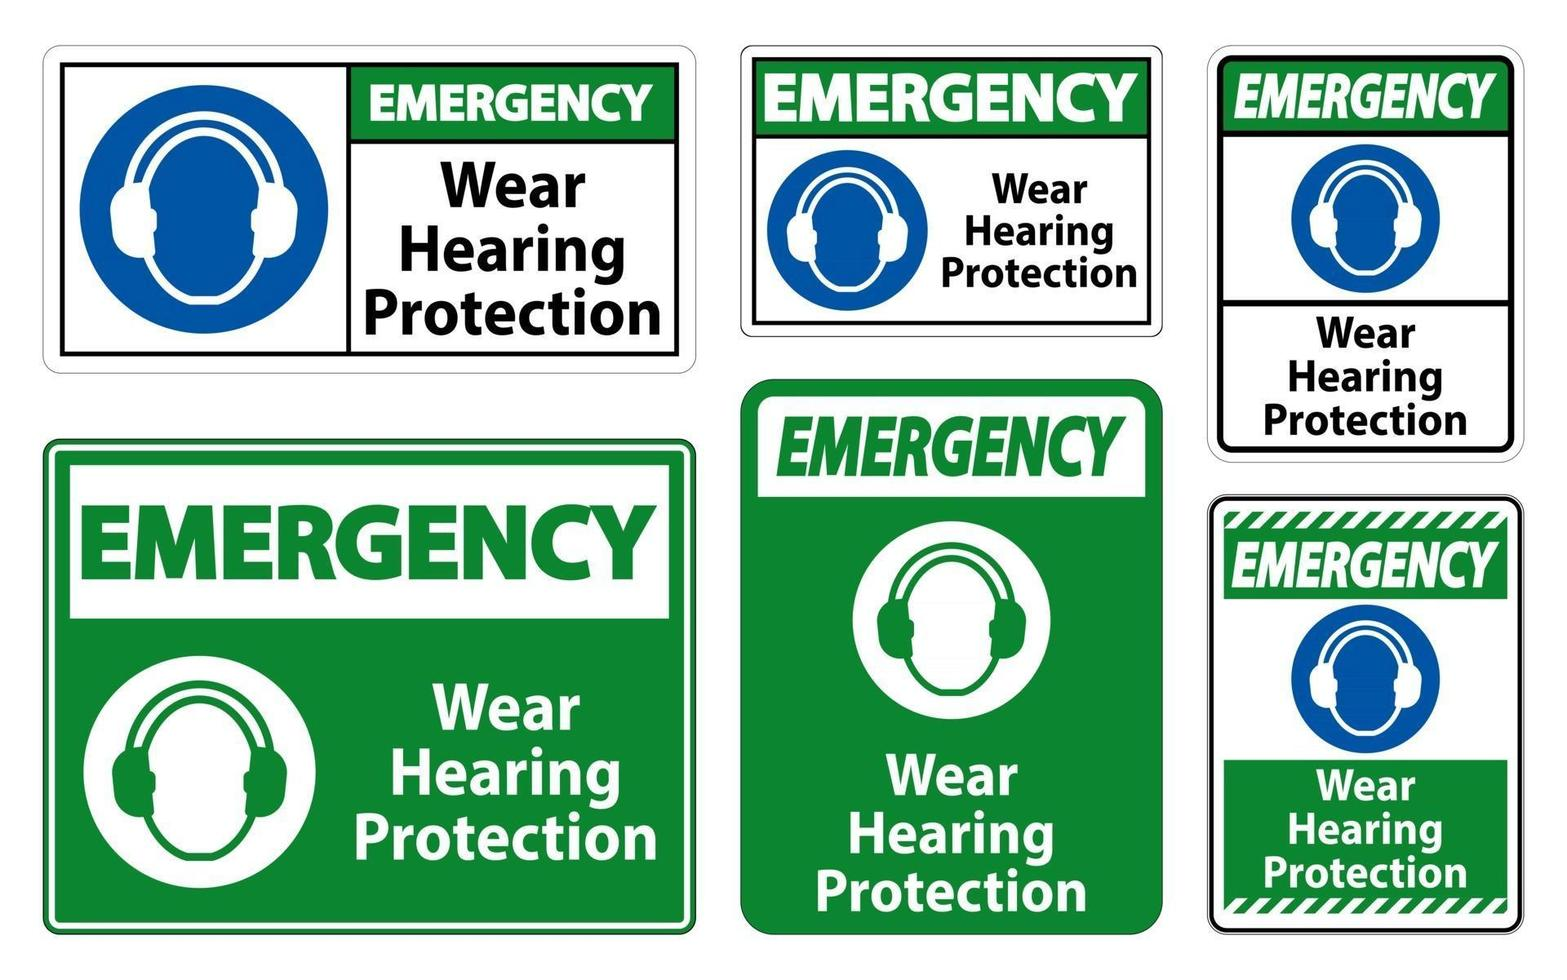 Emergency Wear hearing protection sign on white background vector